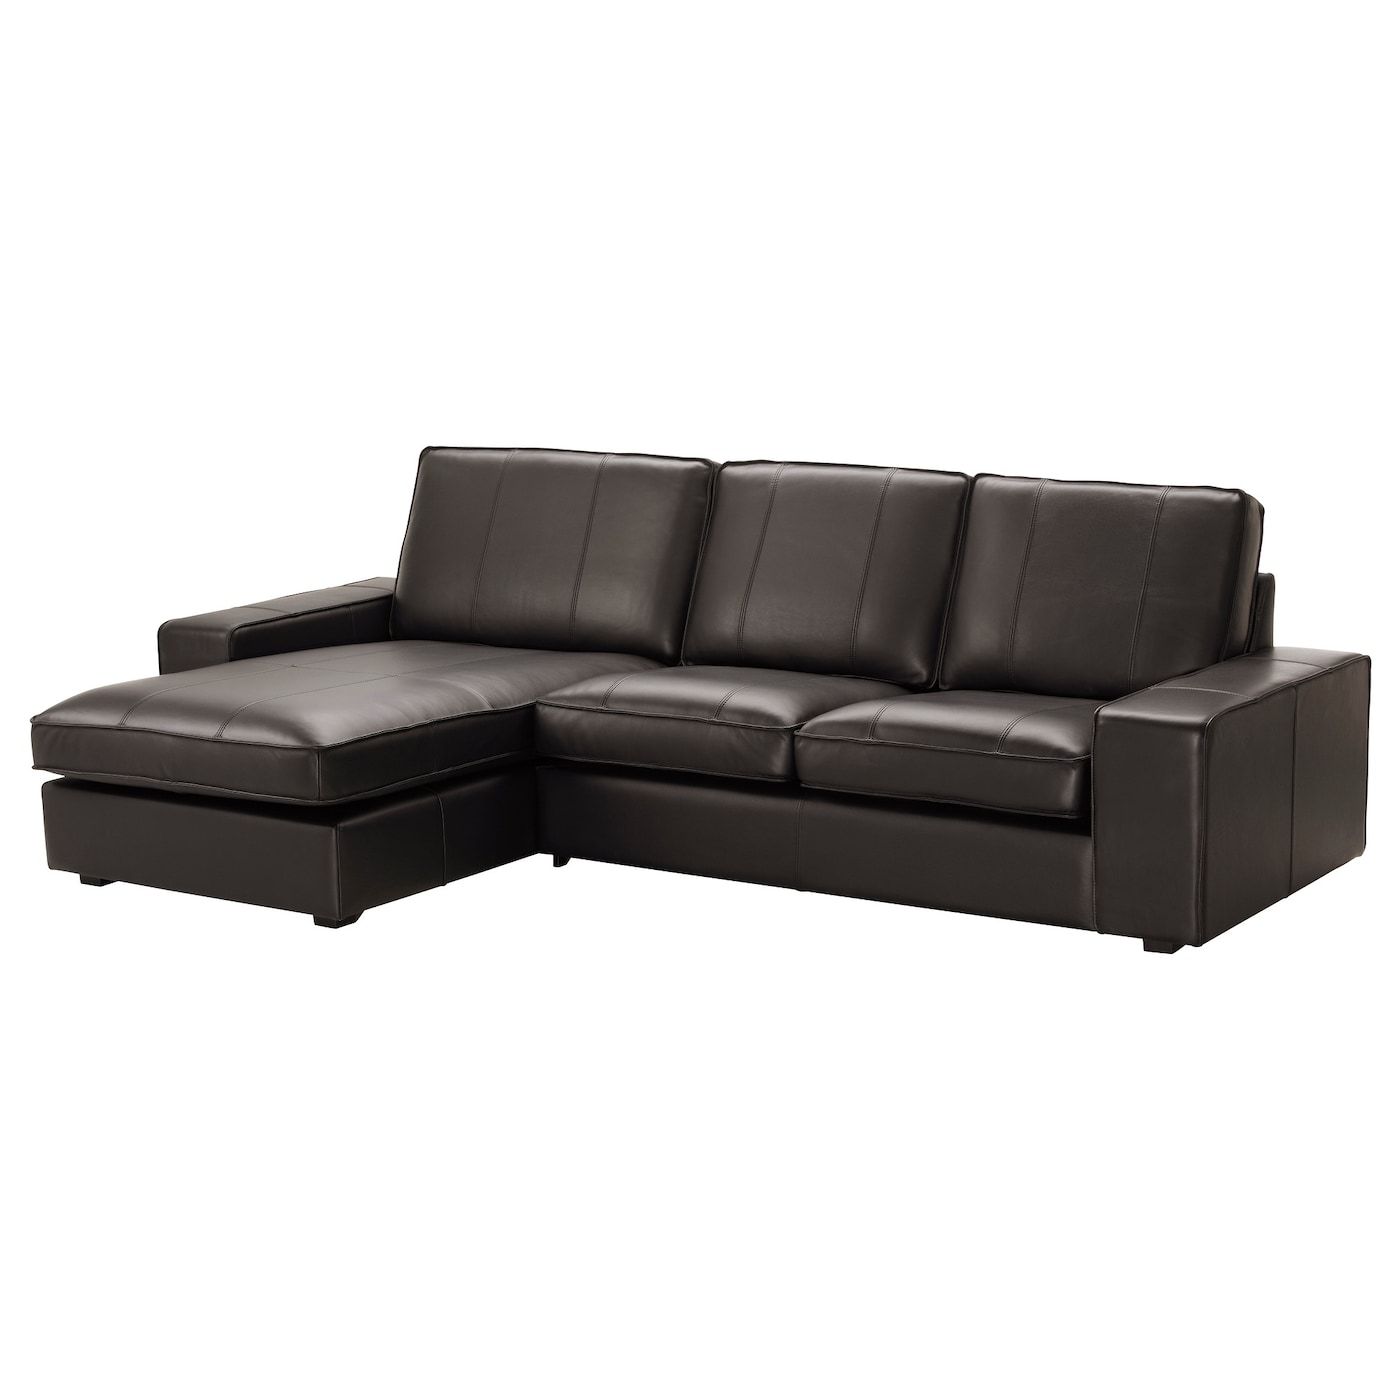 Leather coated fabric sofas ikea for Kivik chaise ikea